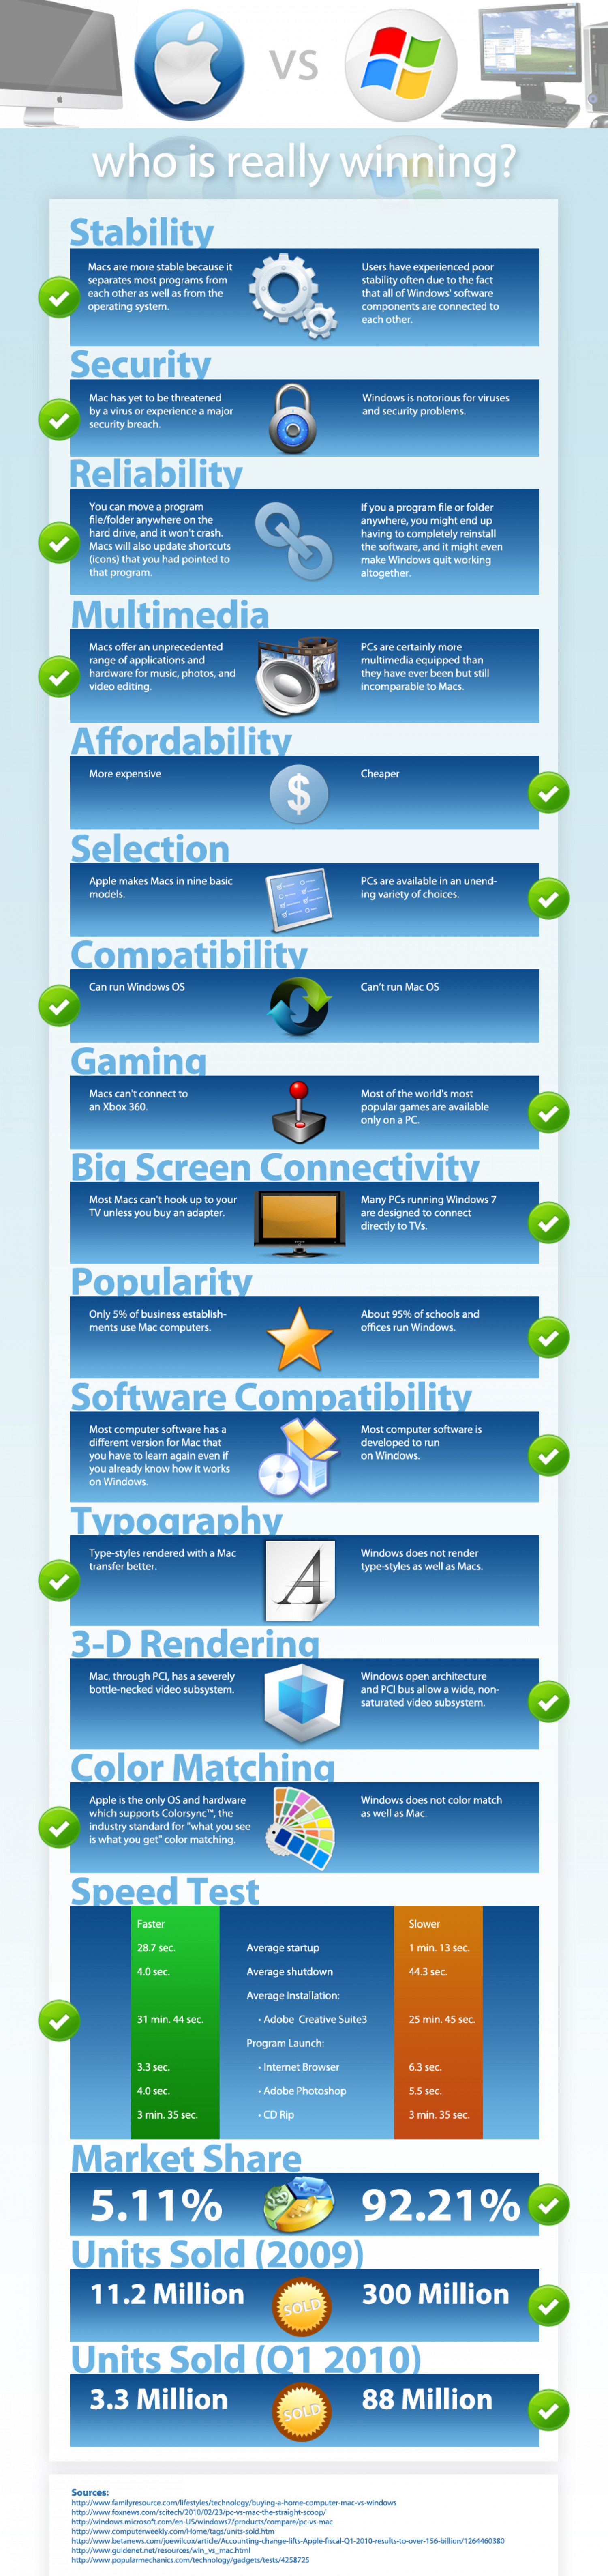 Mac vs. PC - Who's Really Winning? Infographic